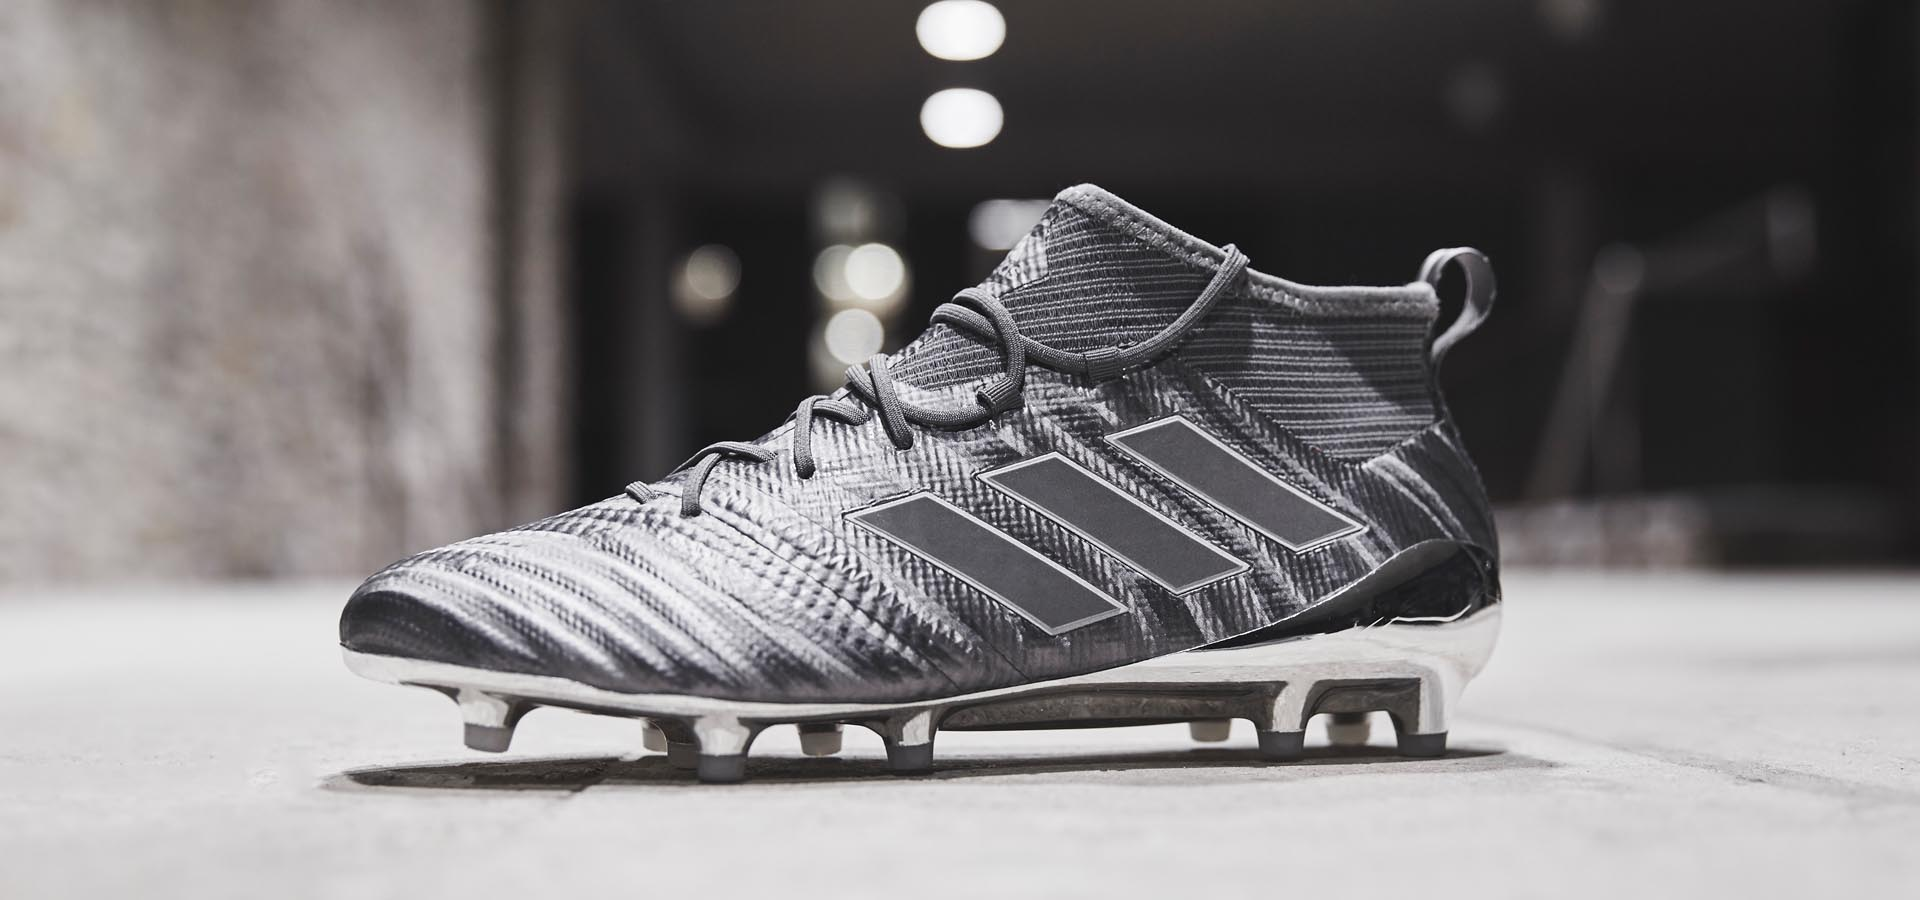 adidas ace 17.1 magnetic storm